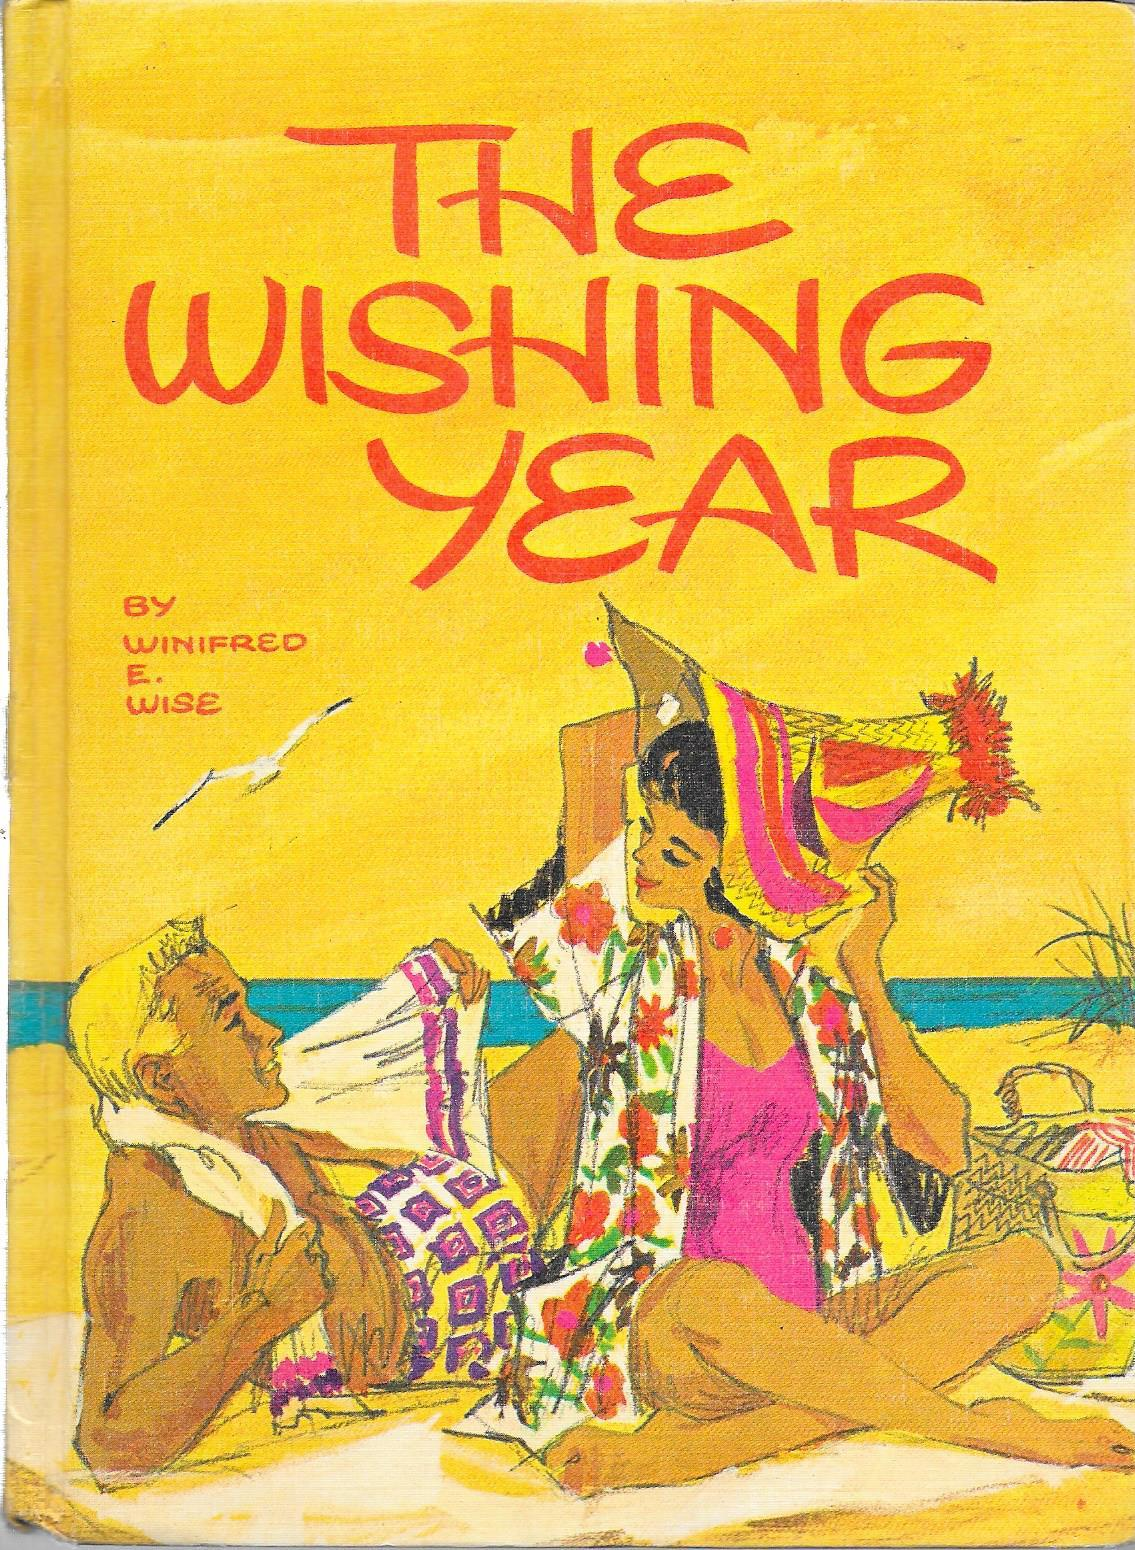 The Wishing Year  by  Winifred E. Wise